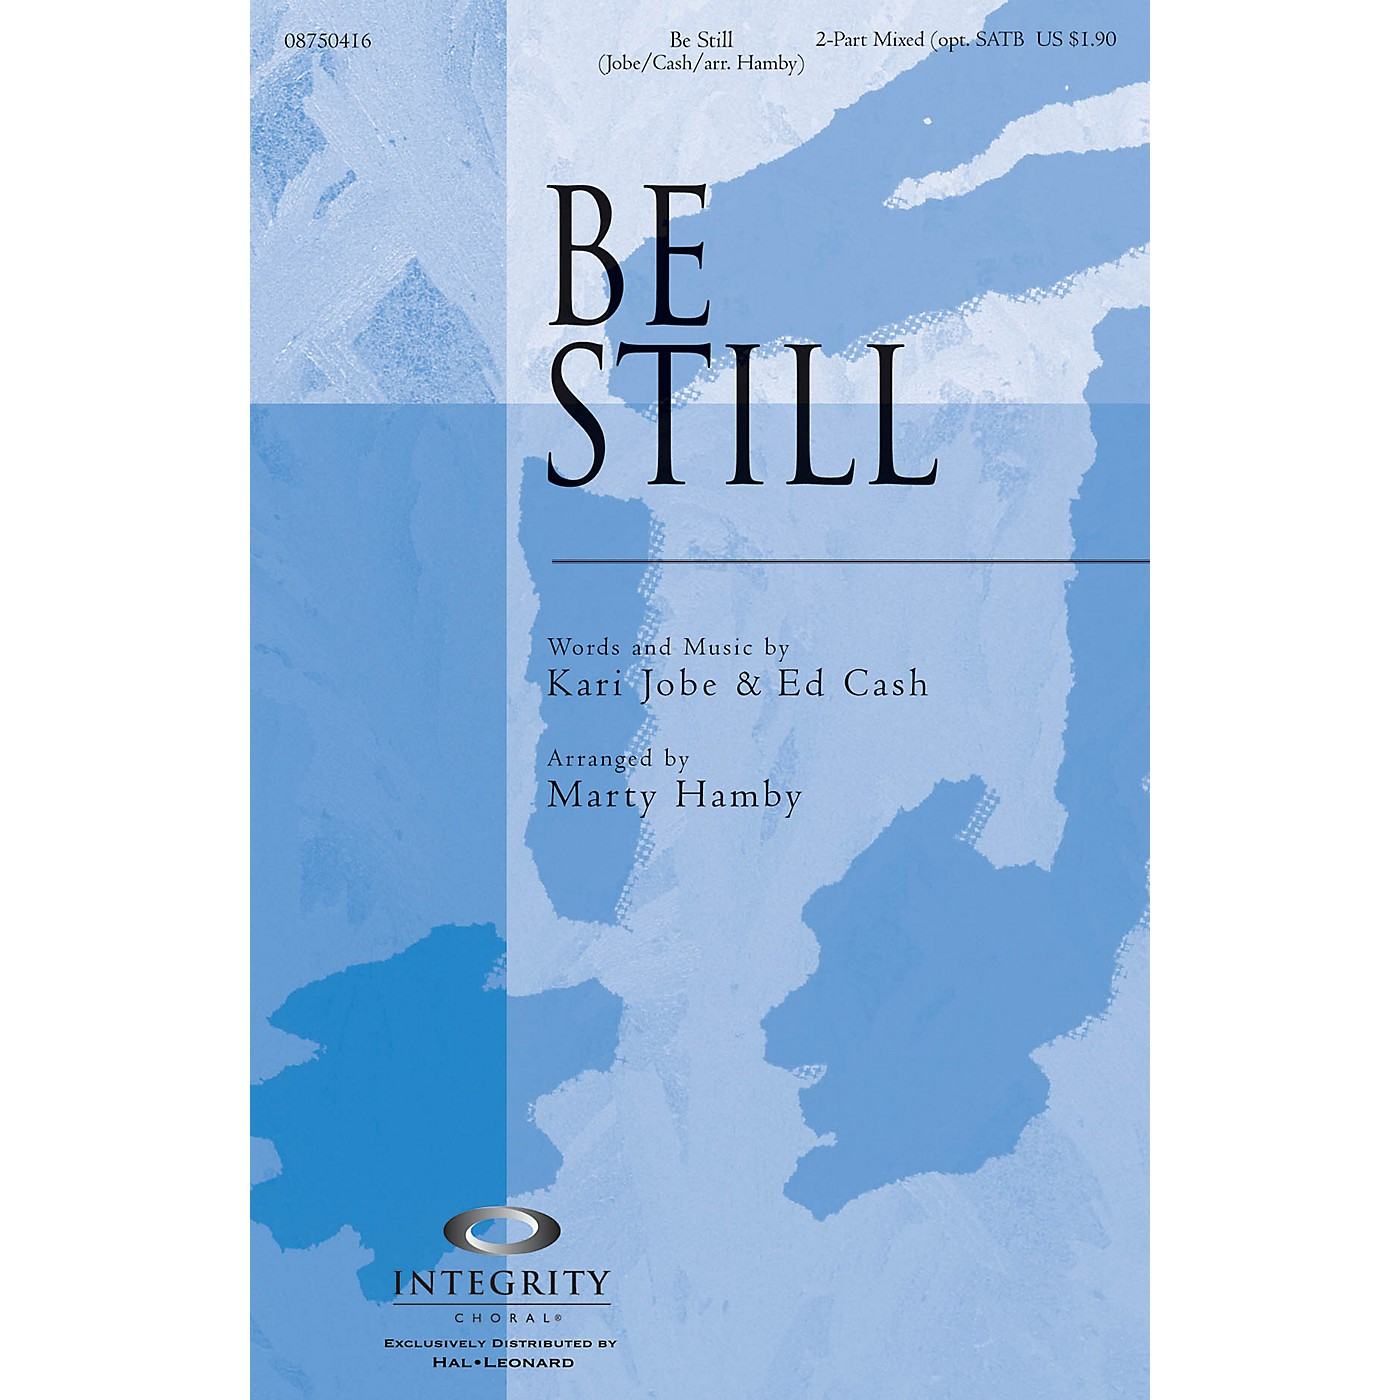 Integrity Choral Be Still 2-Part Mixed (opt. SATB) Arranged by Marty Hamby thumbnail